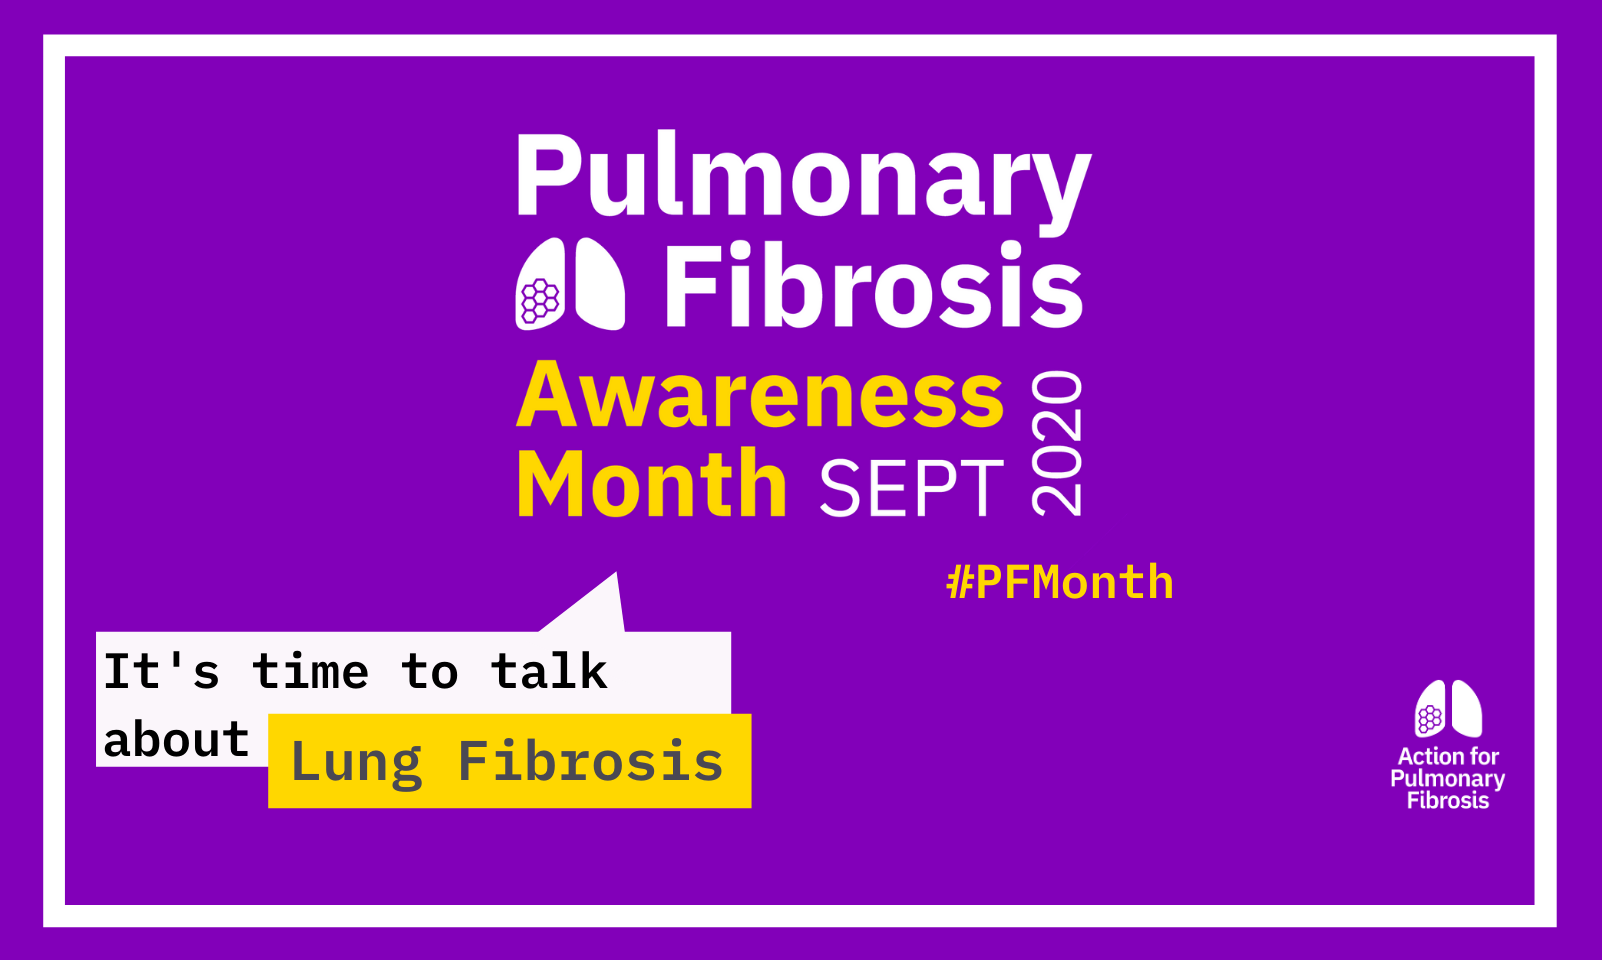 Pulmonary Fibrosis Awareness Month